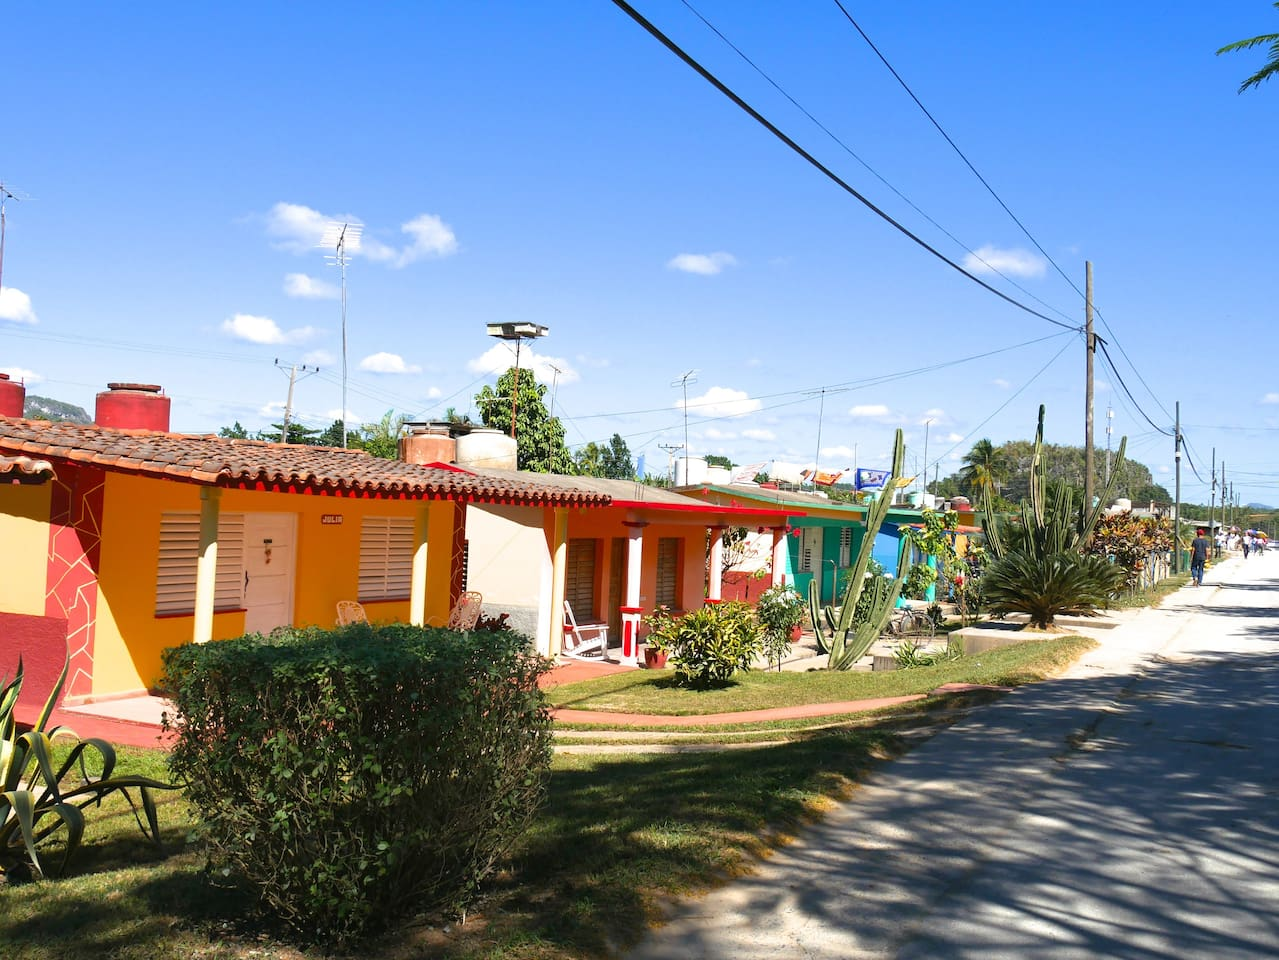 """OUr house is the green one with the cactus in front called """"Casa El Cactus"""""""